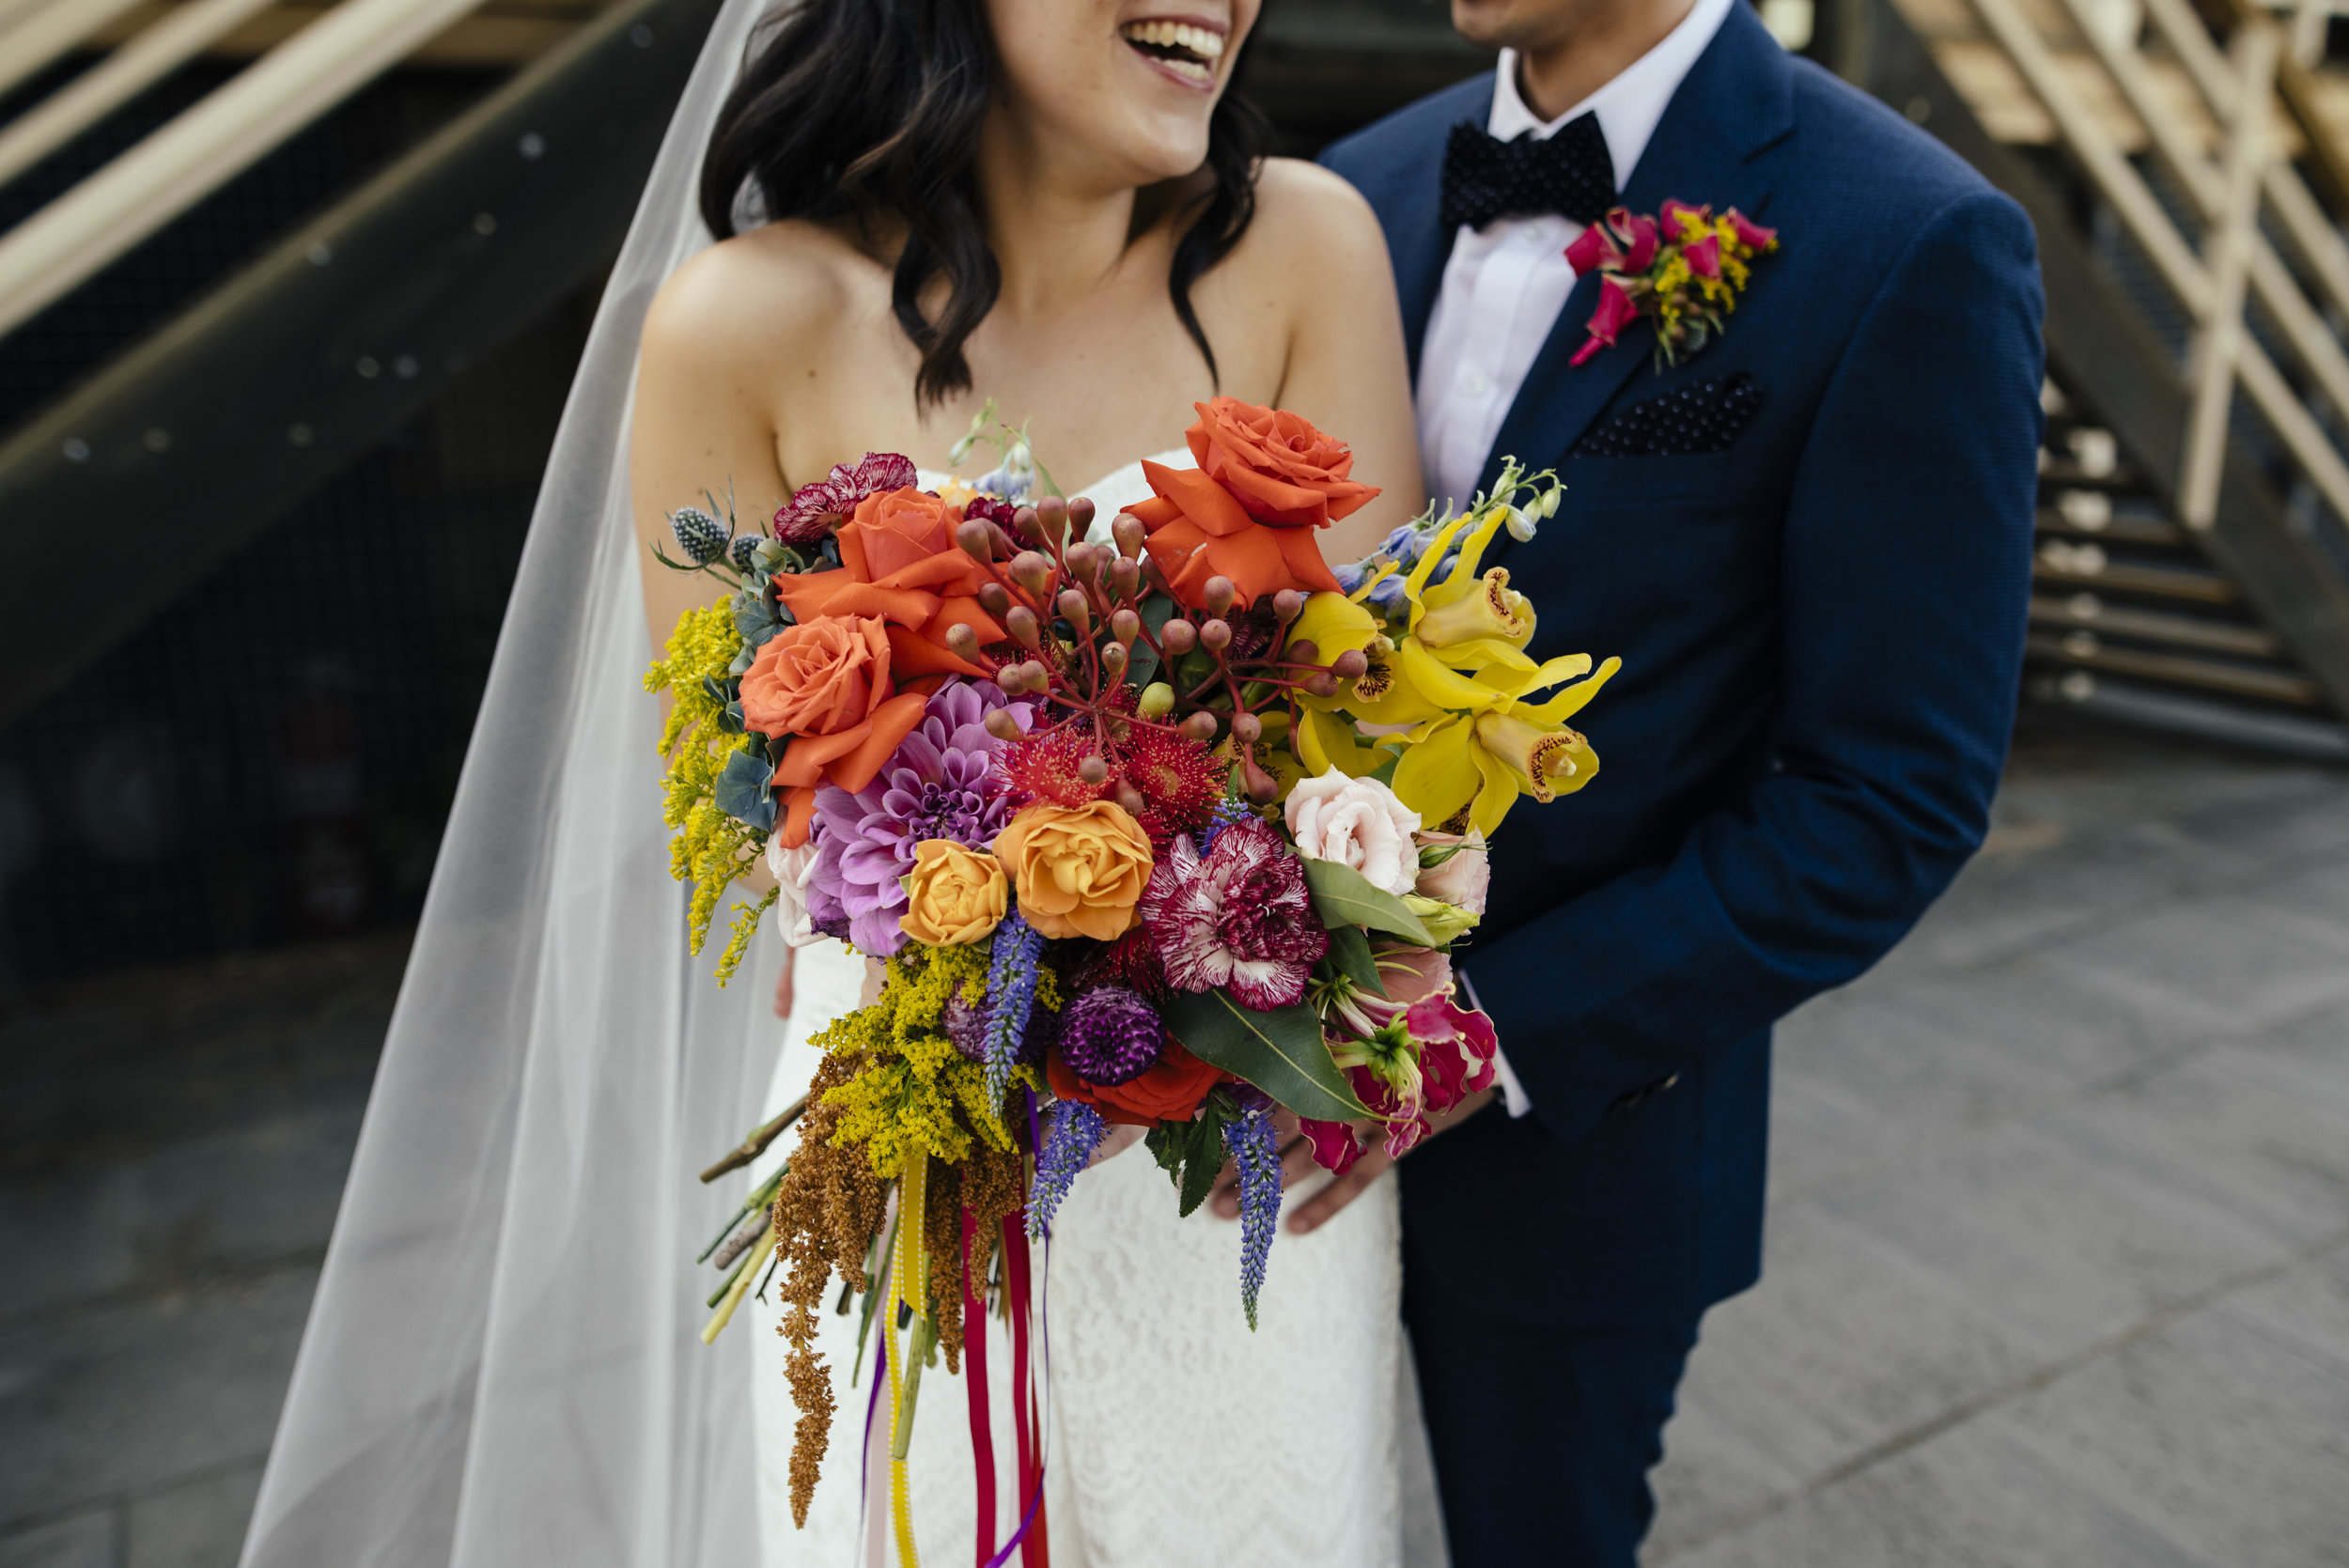 Diana & Steve   Venue: Footscray Arts Centre  Bold, bright and fun colours to create exciting and different bouquets.  Diana & Steve drew inspiration from Mexican fiesta.    Photographer: Motta Weddings